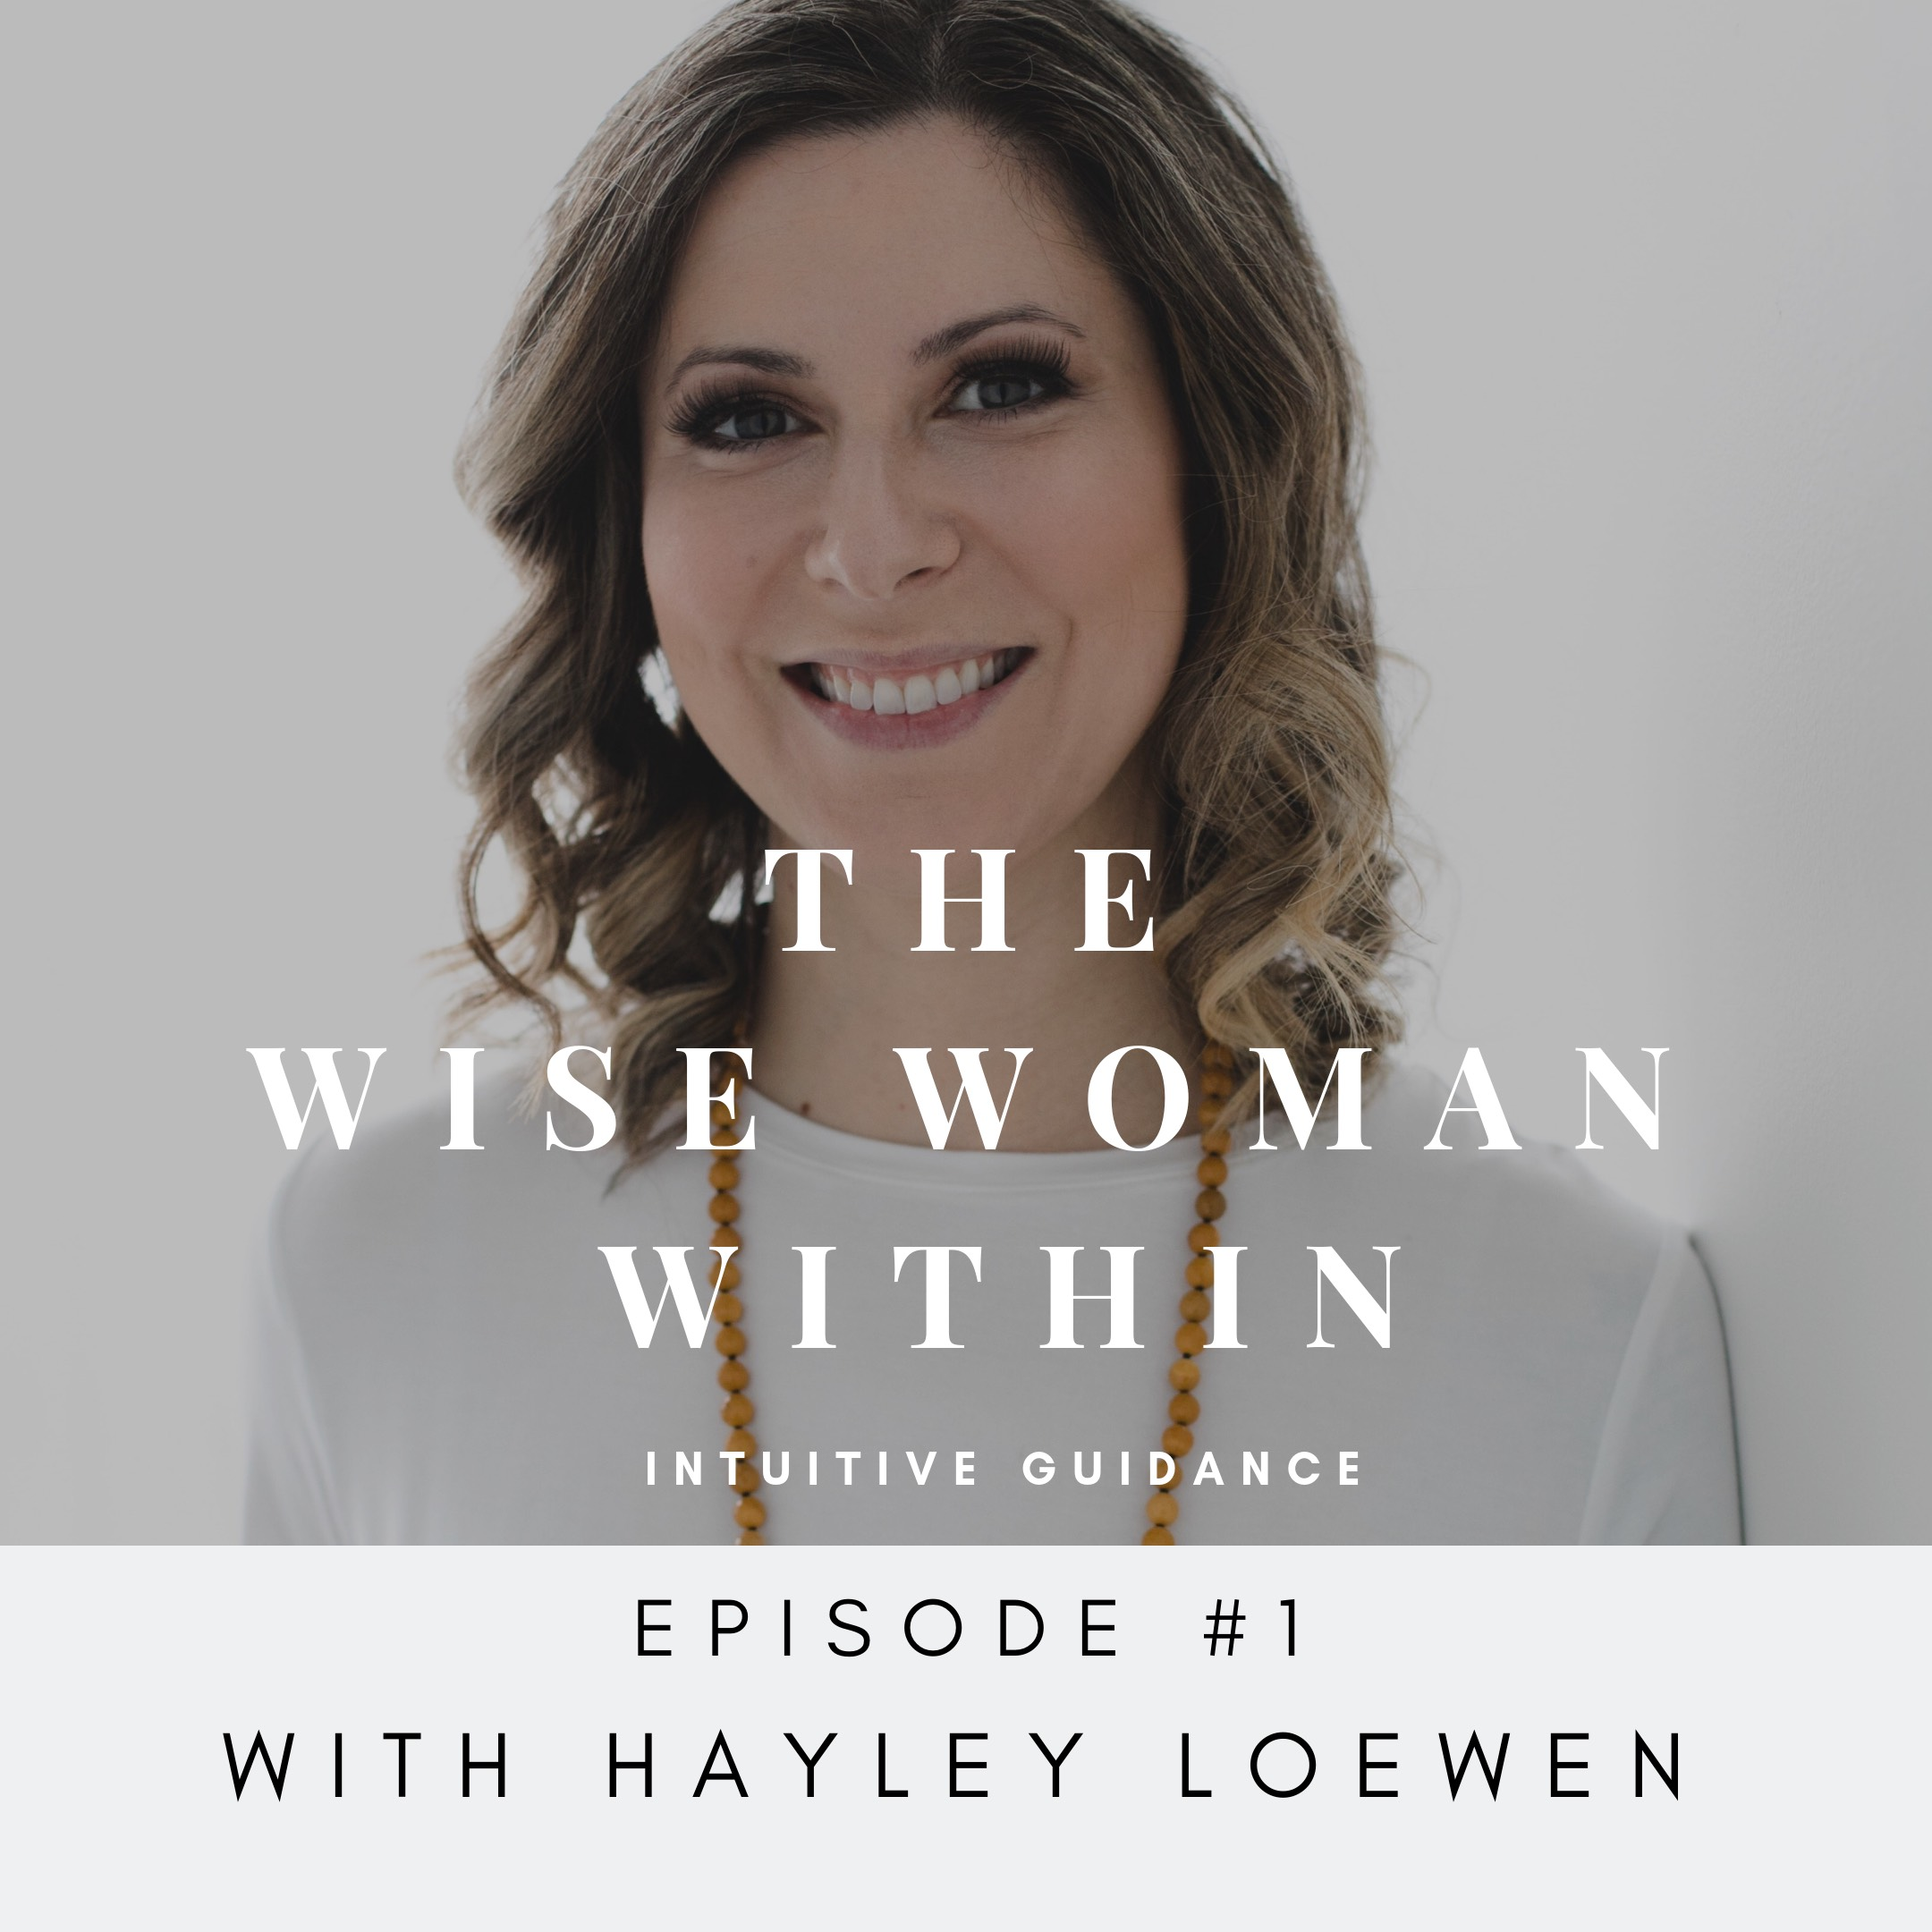 Episode 1 of Hayley Loewen's The Wise Woman Within Podcast